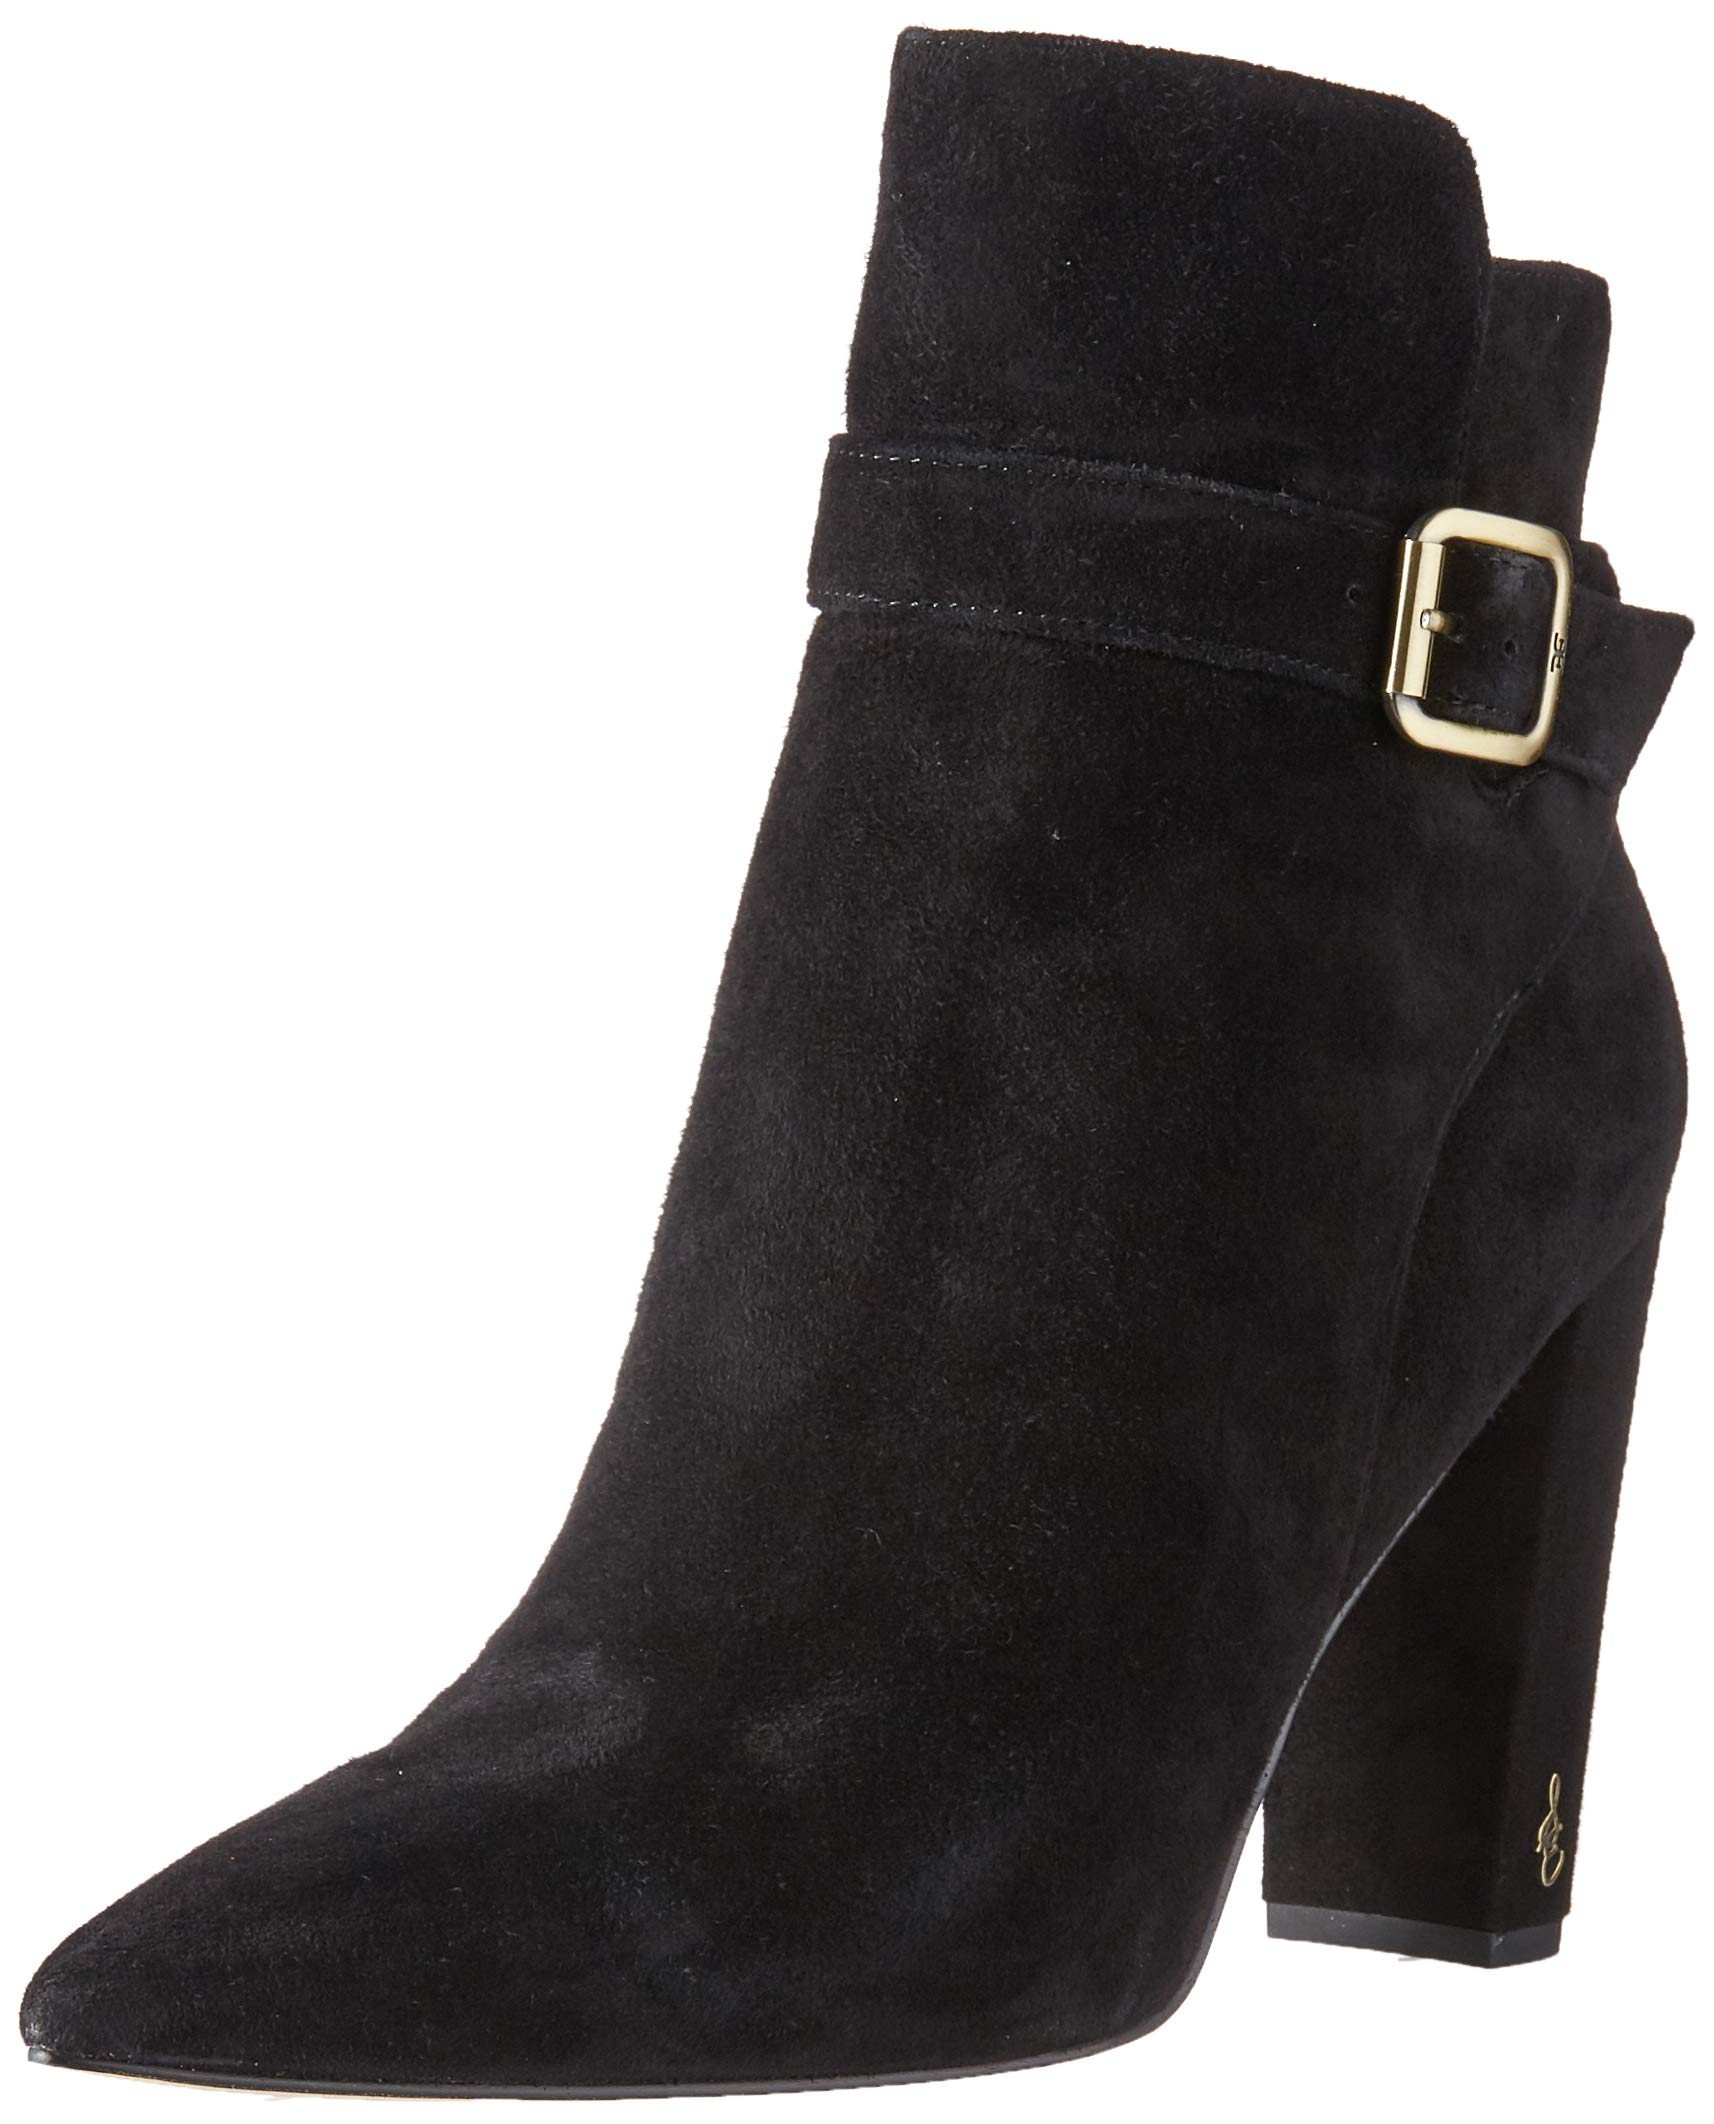 Sam Edelman Women's Rita Ankle Boot, Black, 7 Medium US by Sam Edelman